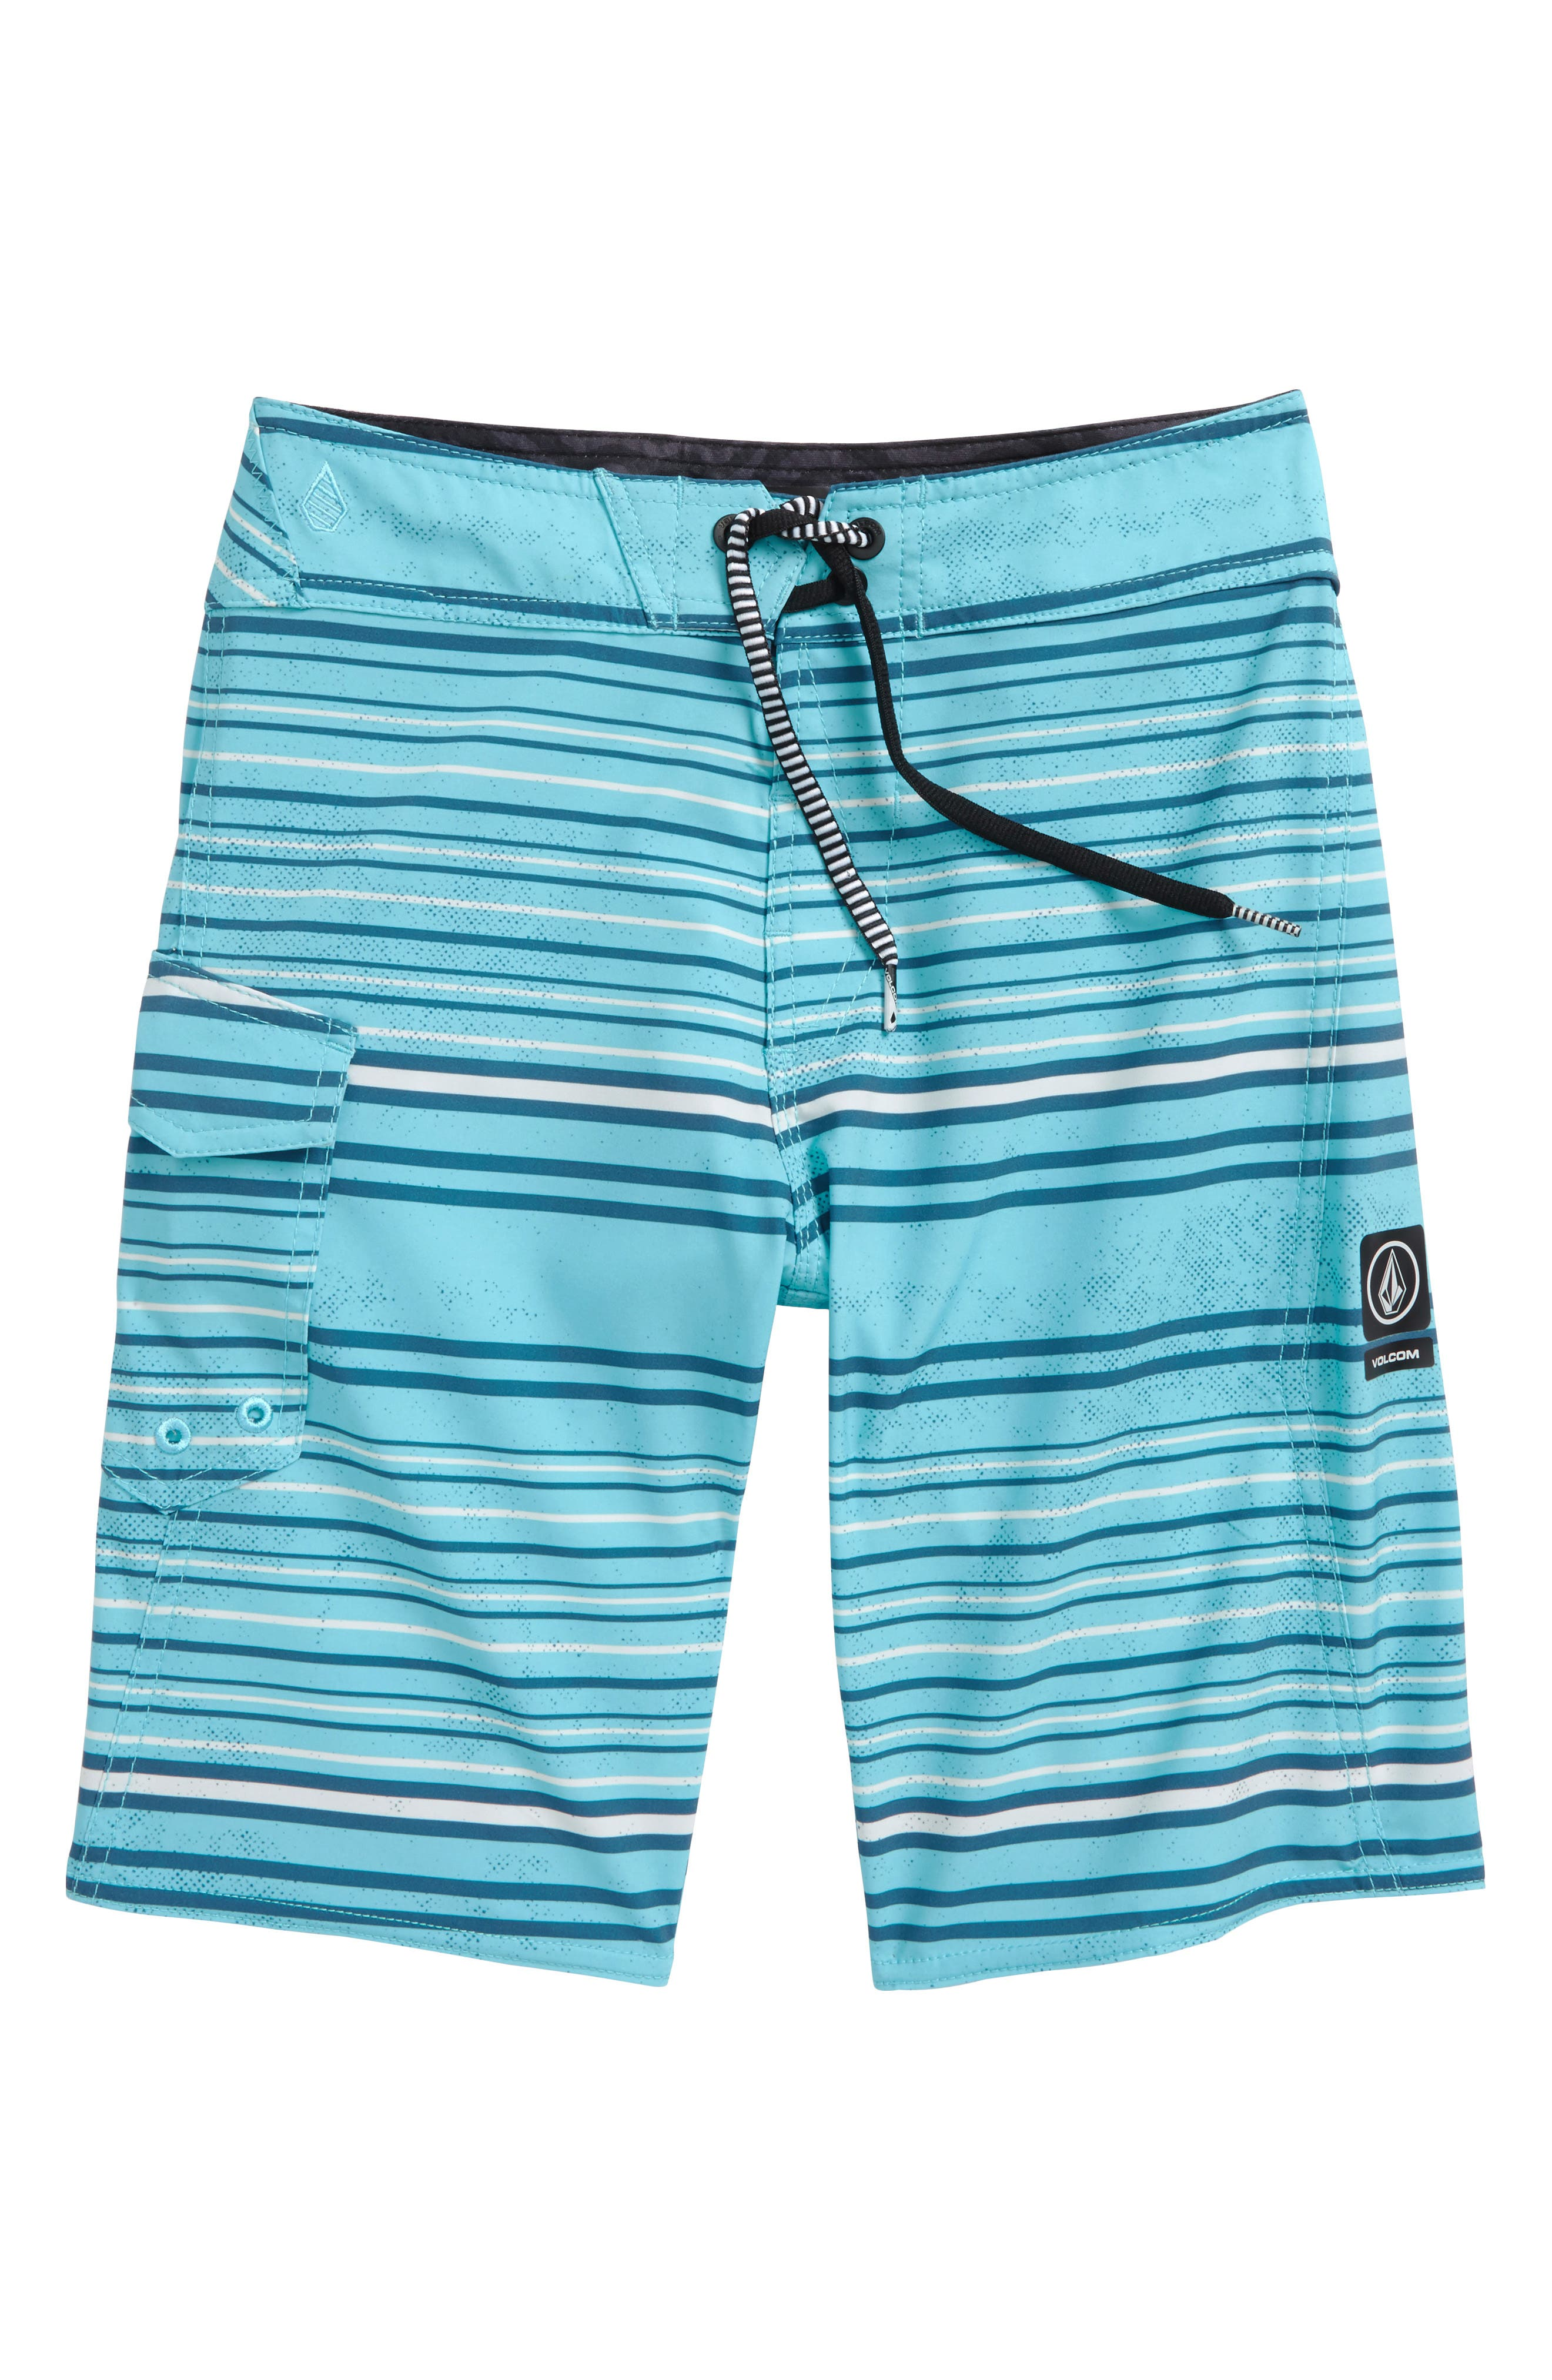 Magnetic Liney Board Shorts,                         Main,                         color, 440